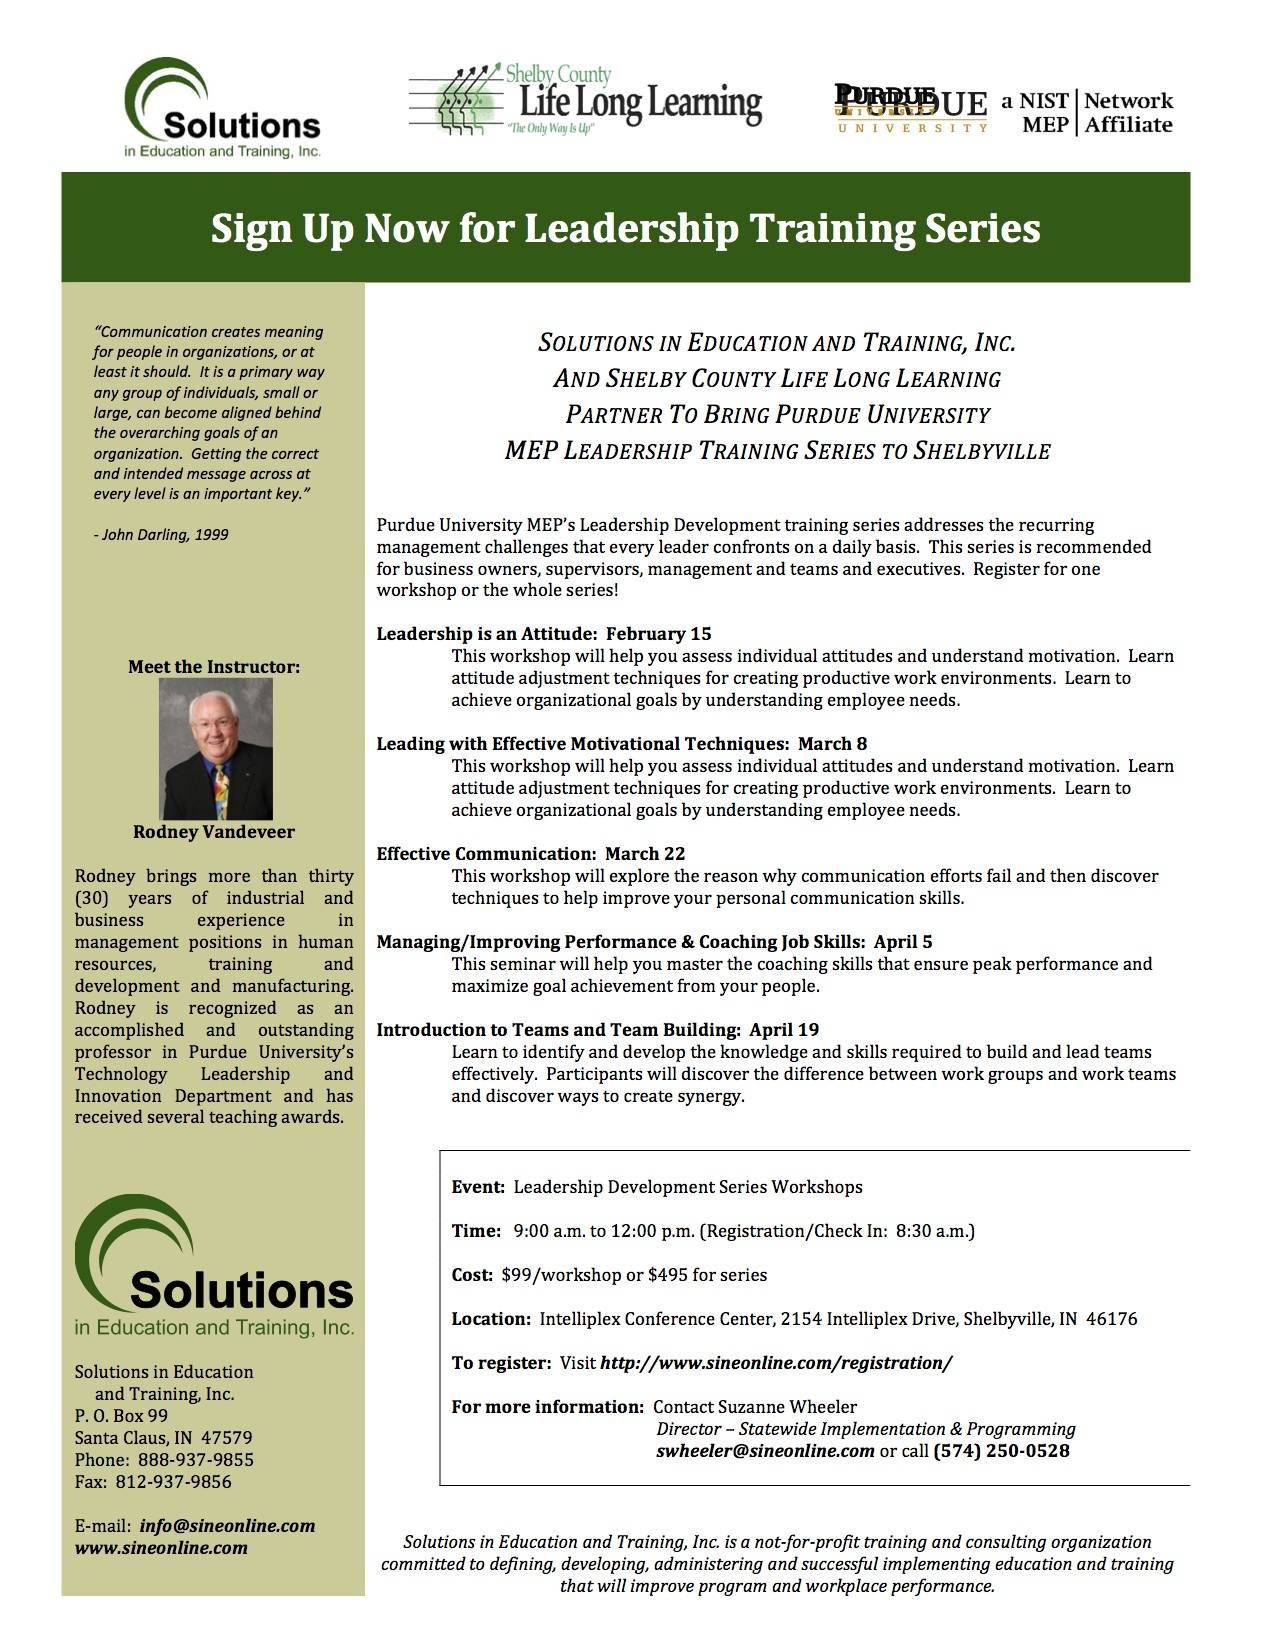 Flier for Leadership Training Series in Shelbyville